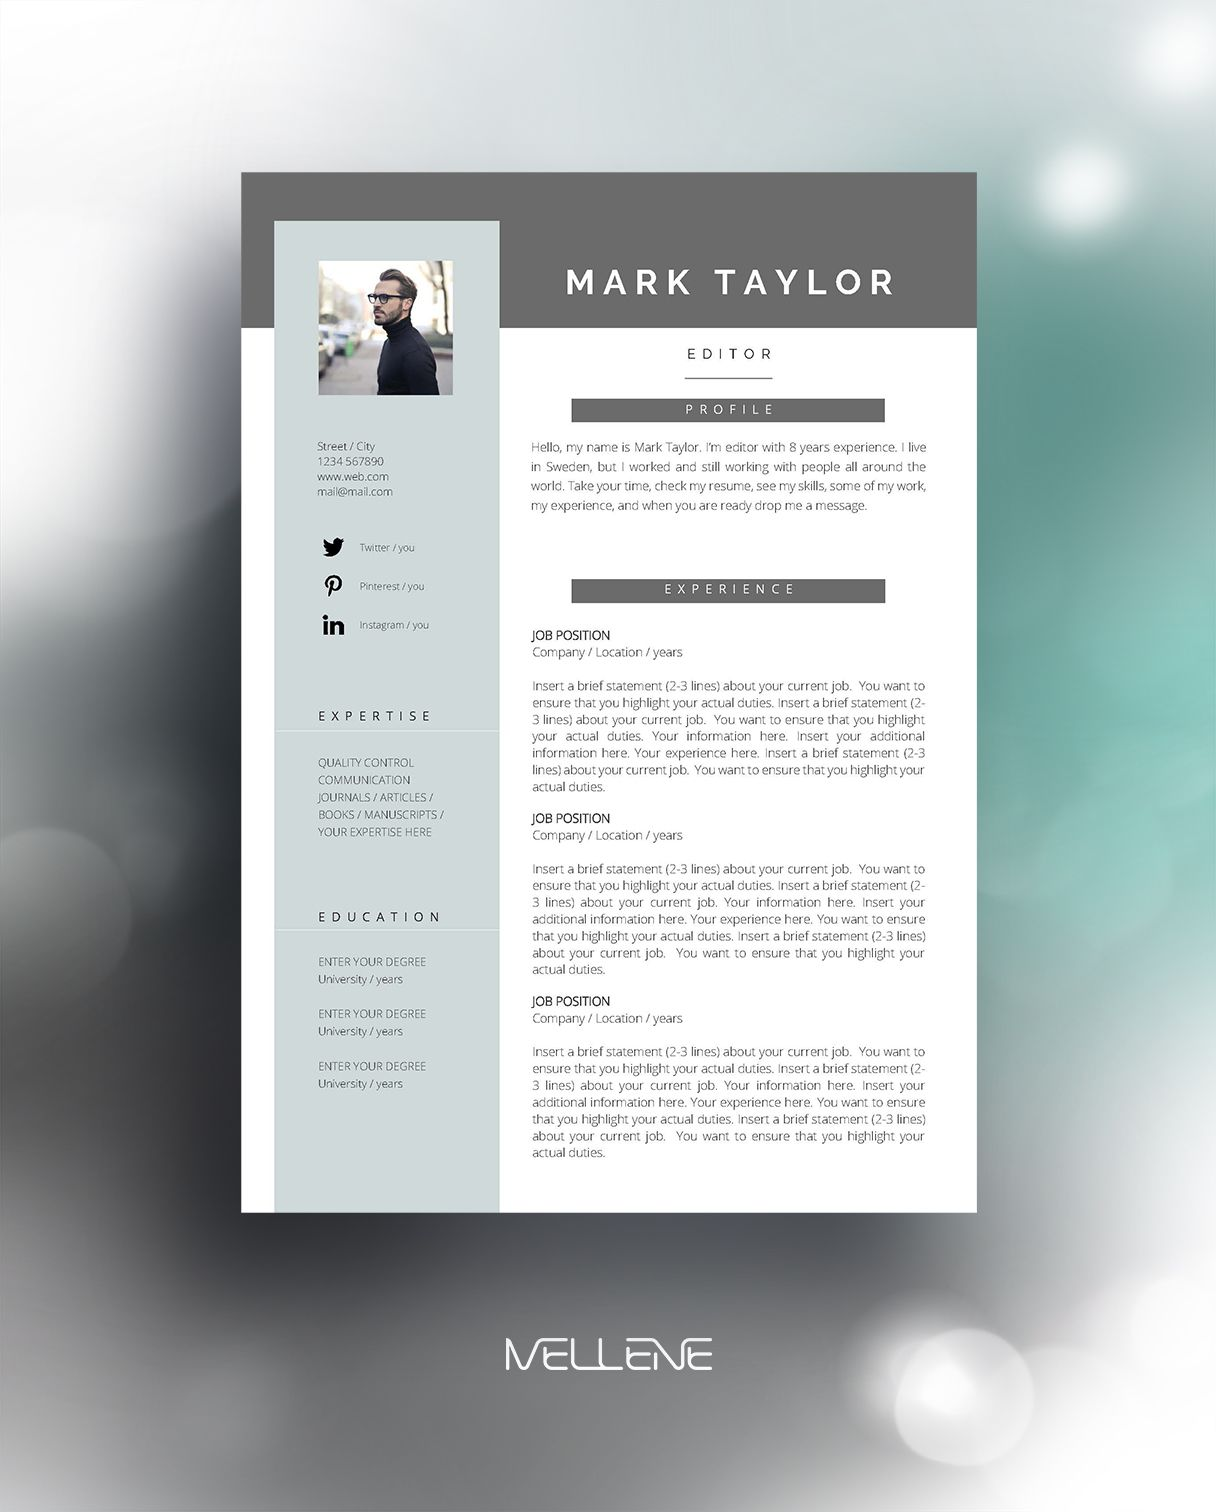 cv    resume template for ms word  2 cv pages   cover letter   free icons   usage manual